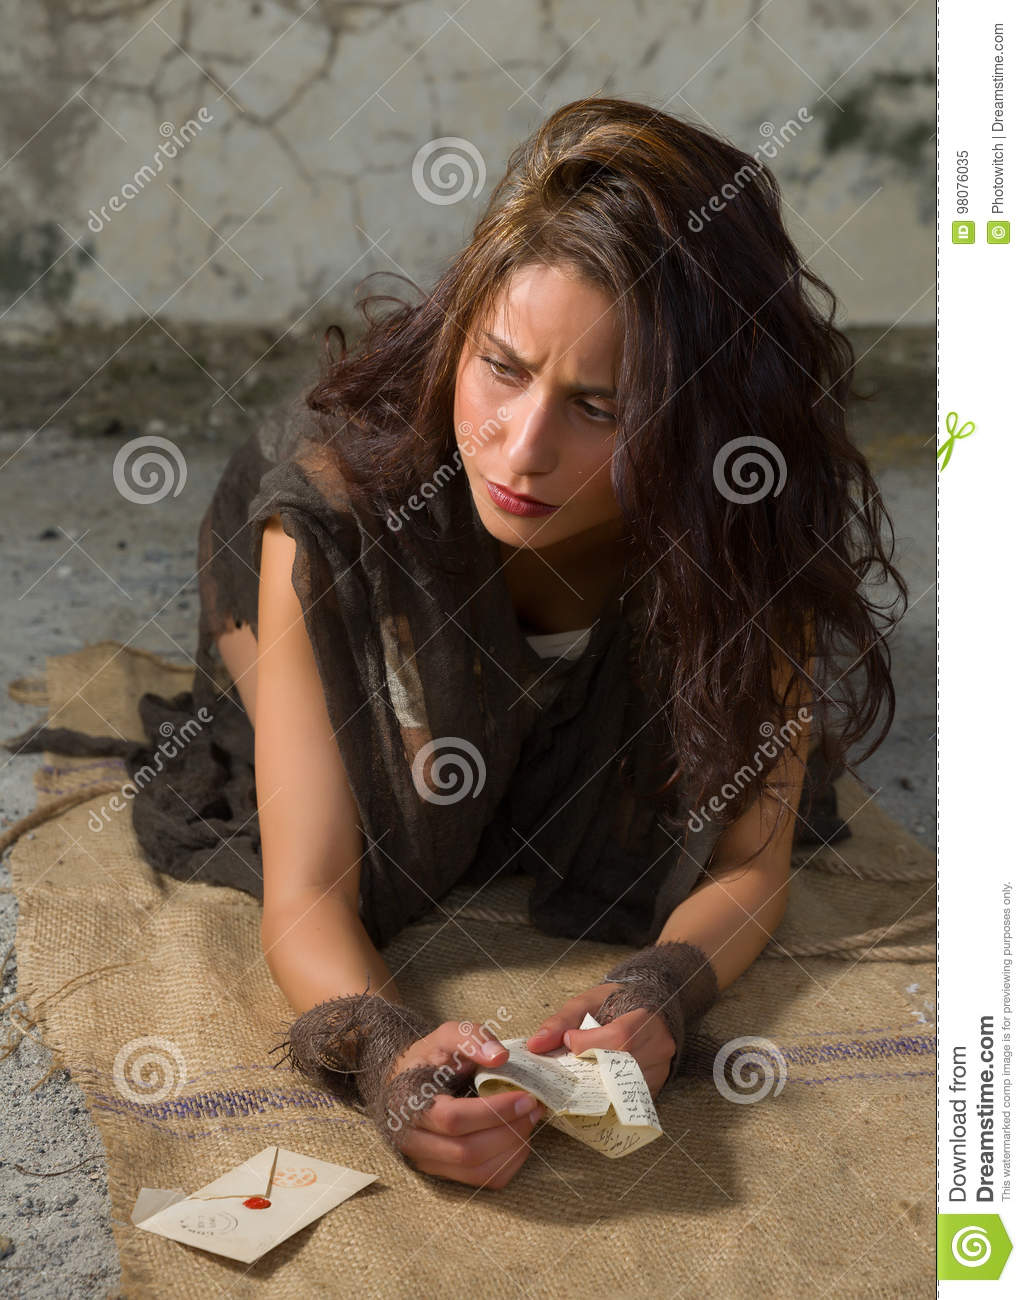 Letter With Bad News Stock Image Image Of Floor Sadness